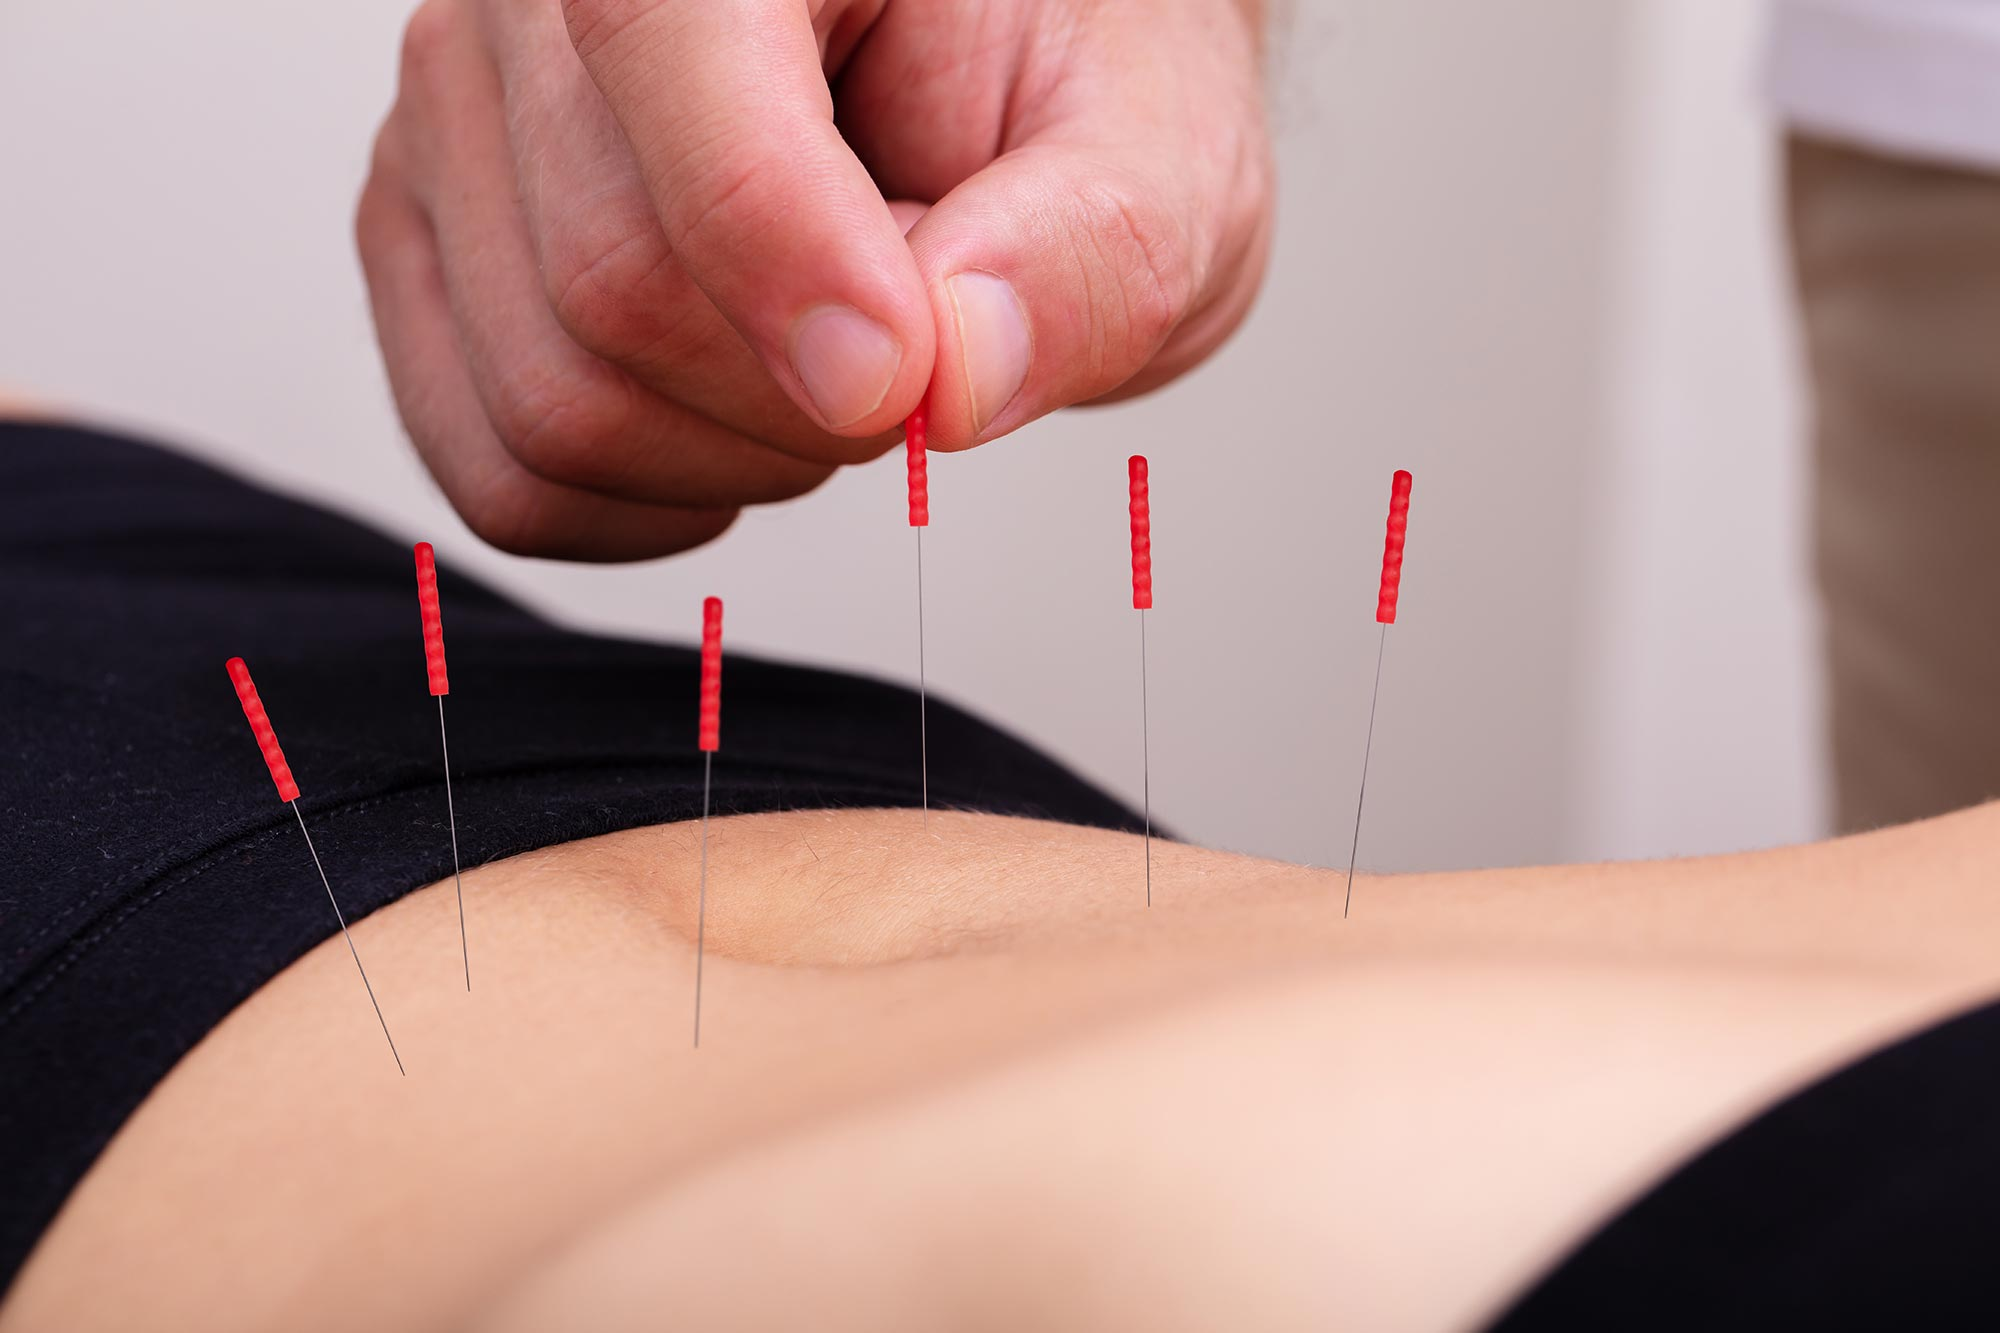 acupuncture-for-menstrual-cramp-relief-centennial-co